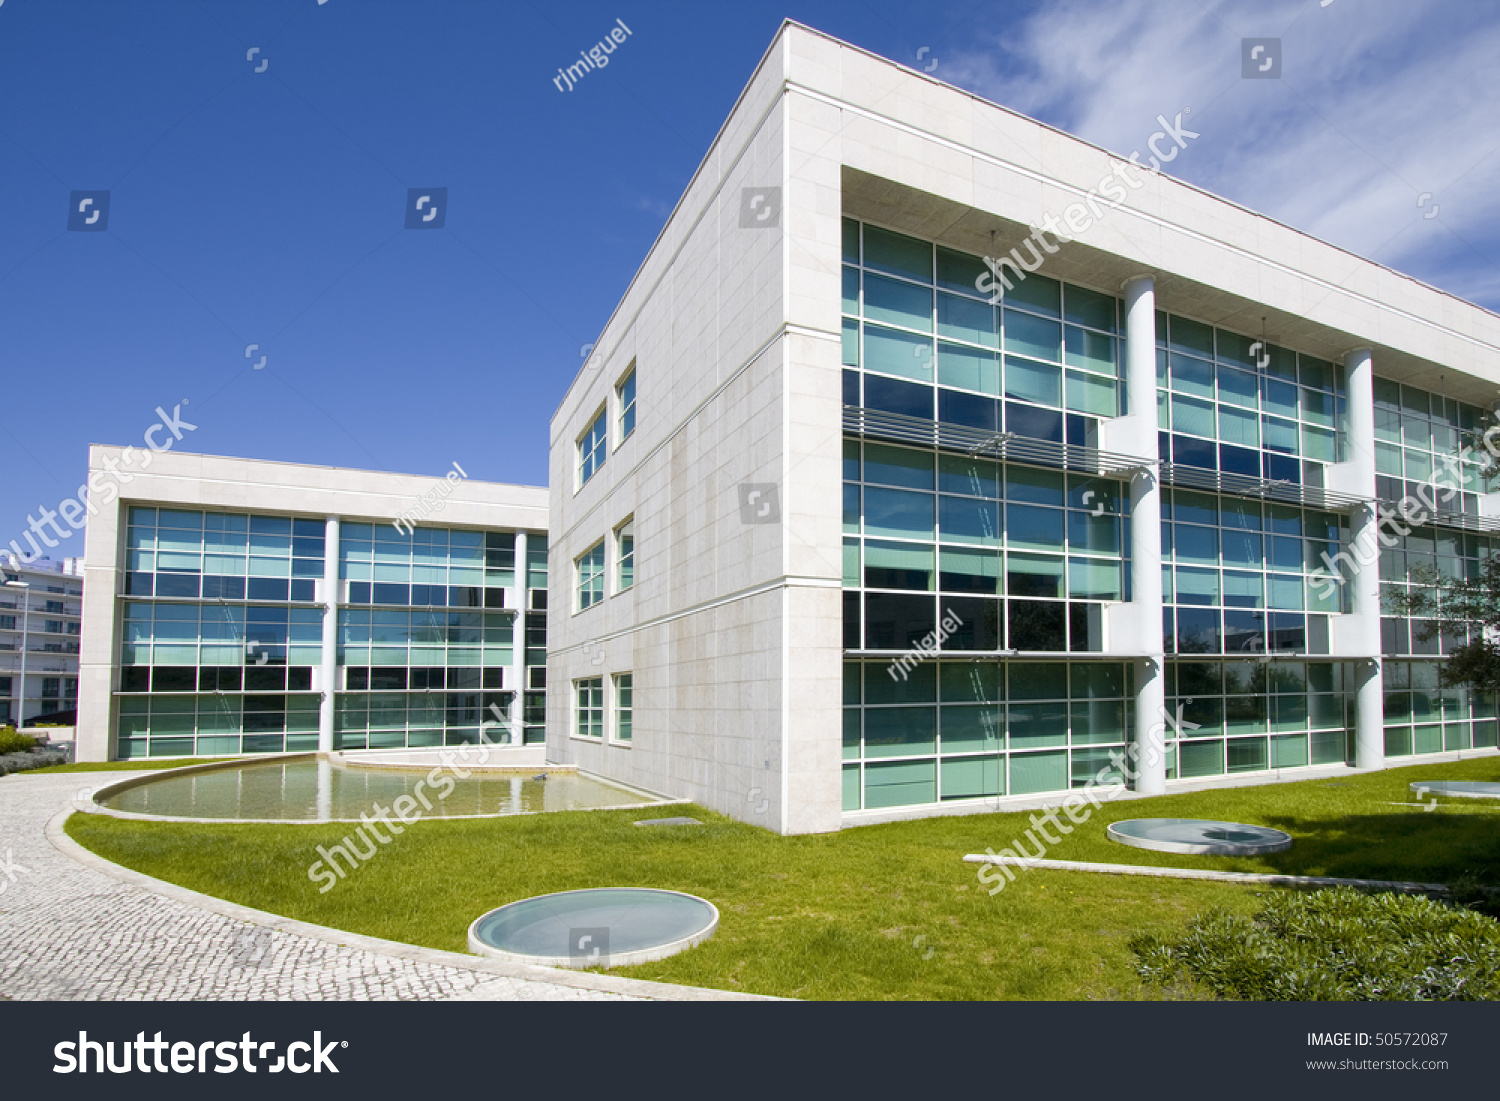 Cityscape office buildings modern corporate architecture for Modern office building design concepts